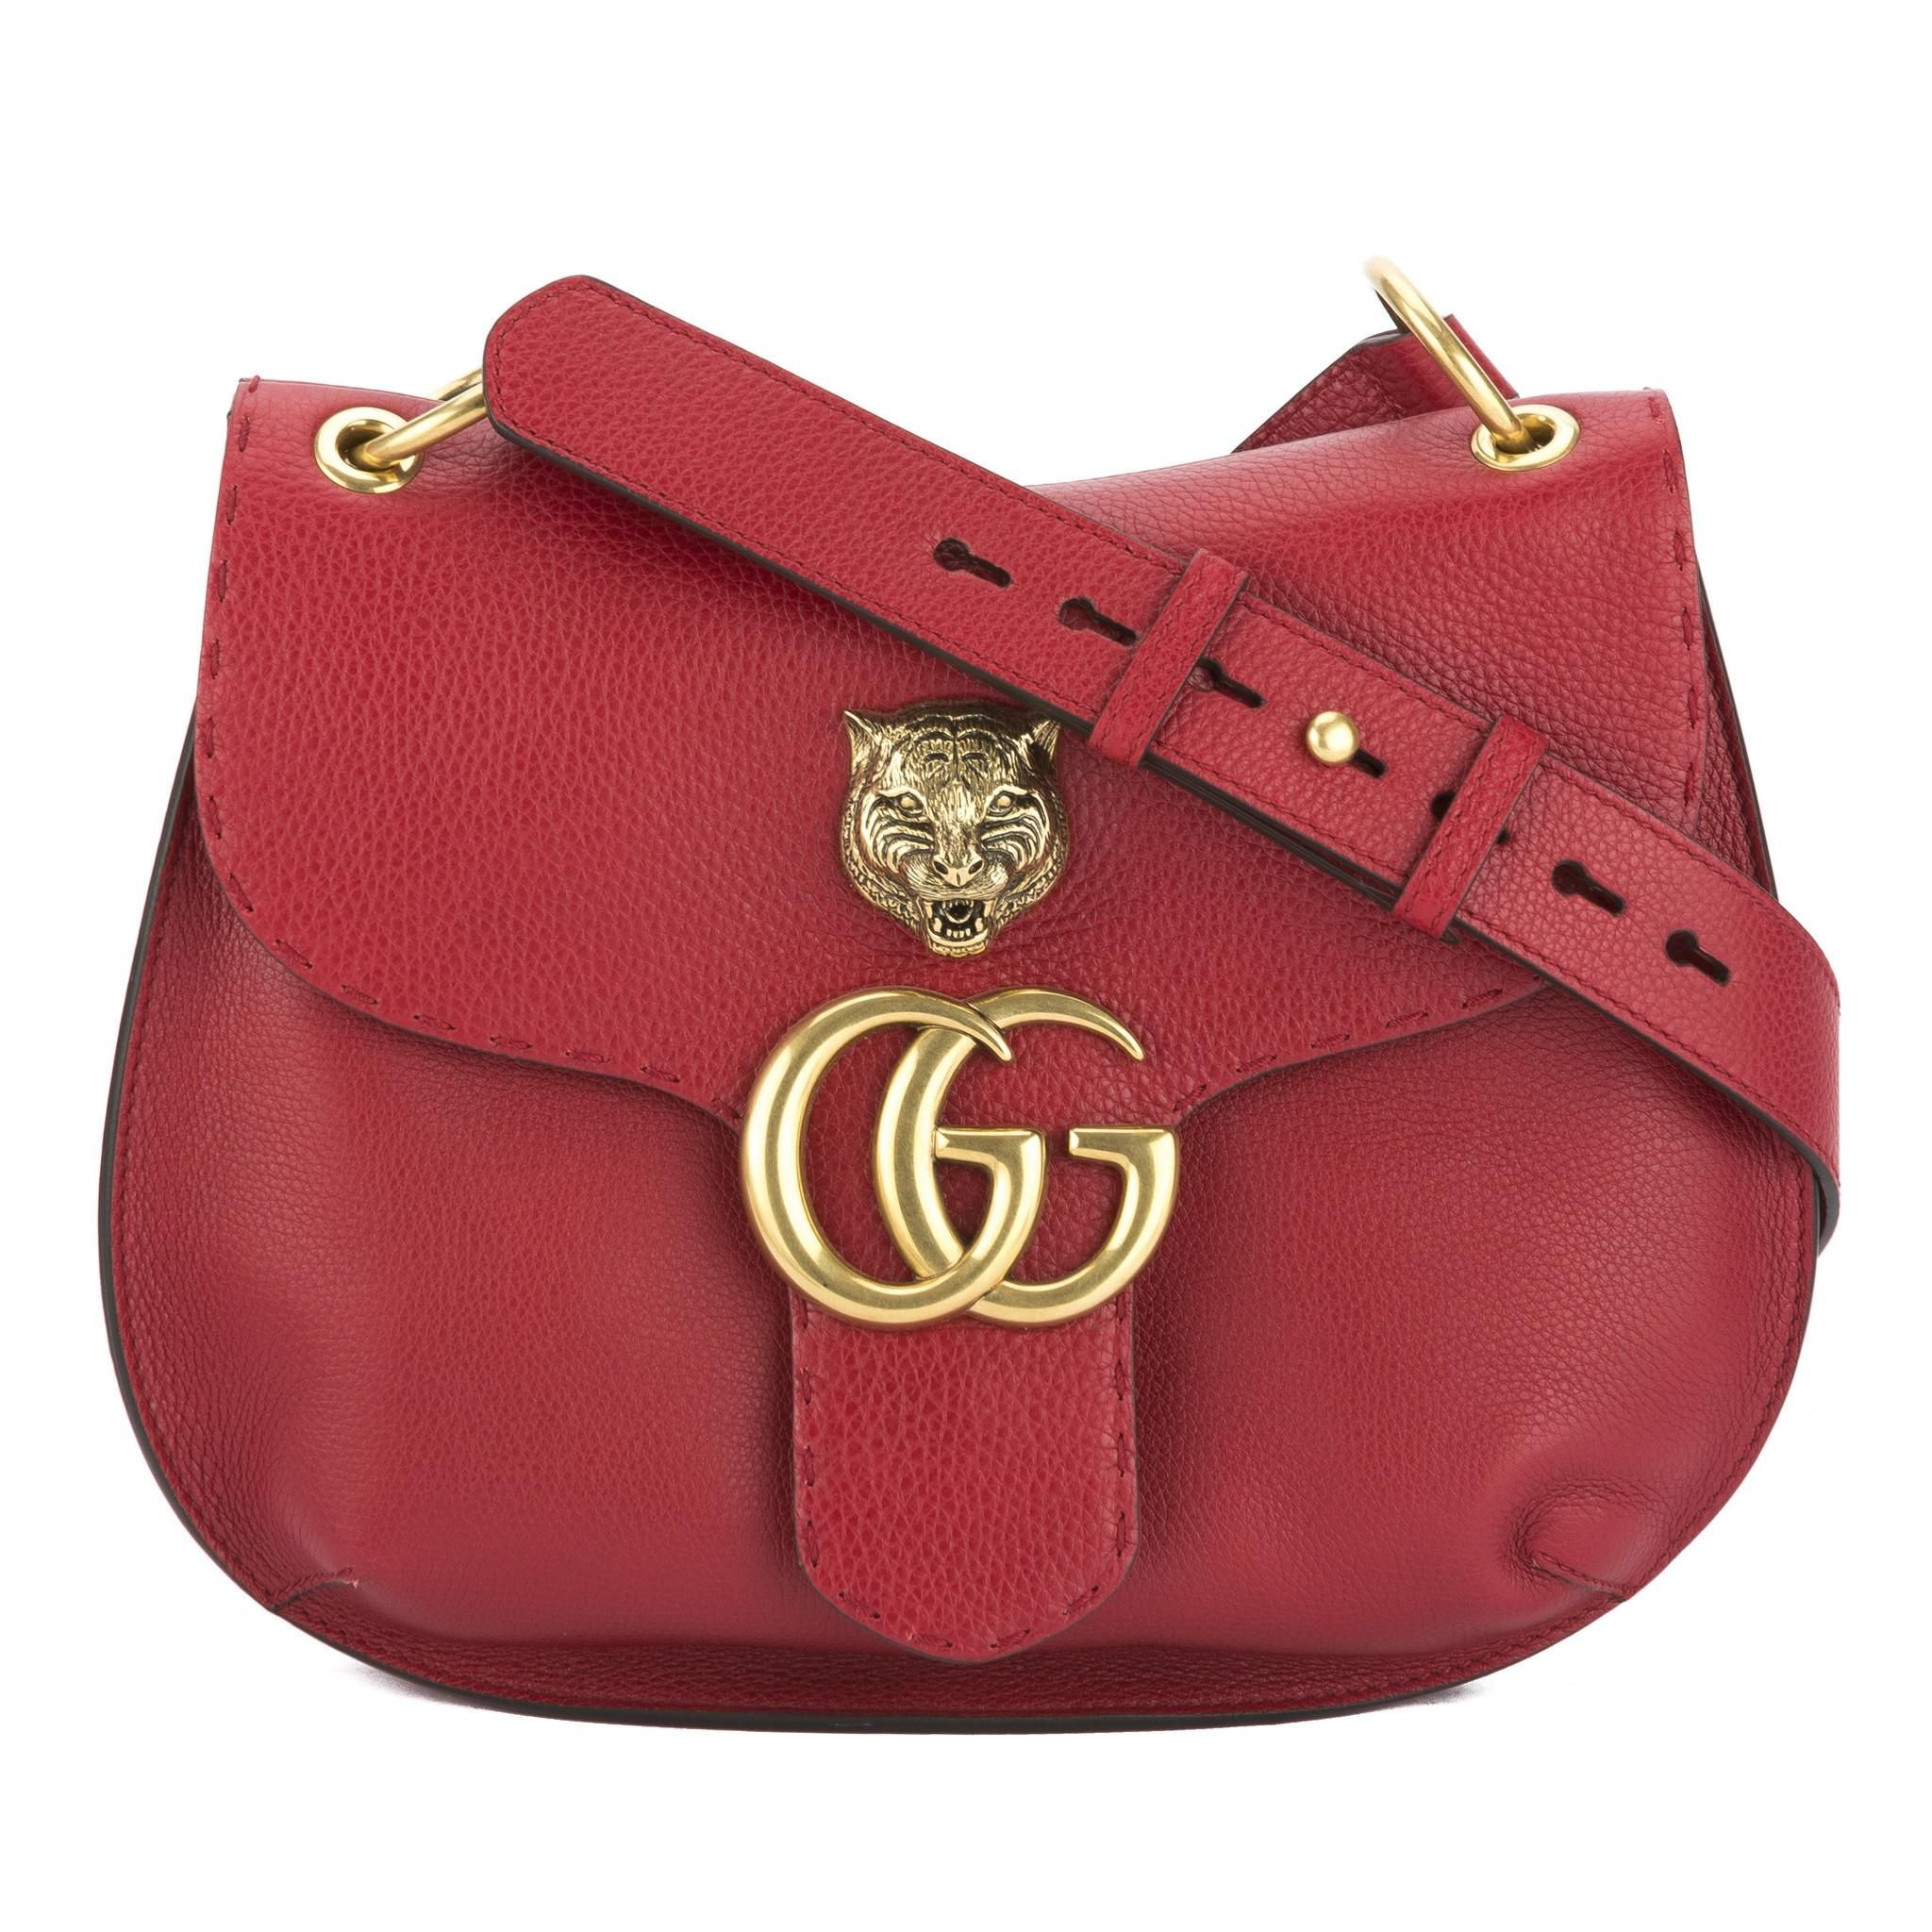 d9b5aef51ff1 Get one of the hottest styles of the season! The Gucci Red Leather Gg  Marmont Shoulder Bag is a top 10 member favorite on Tradesy.